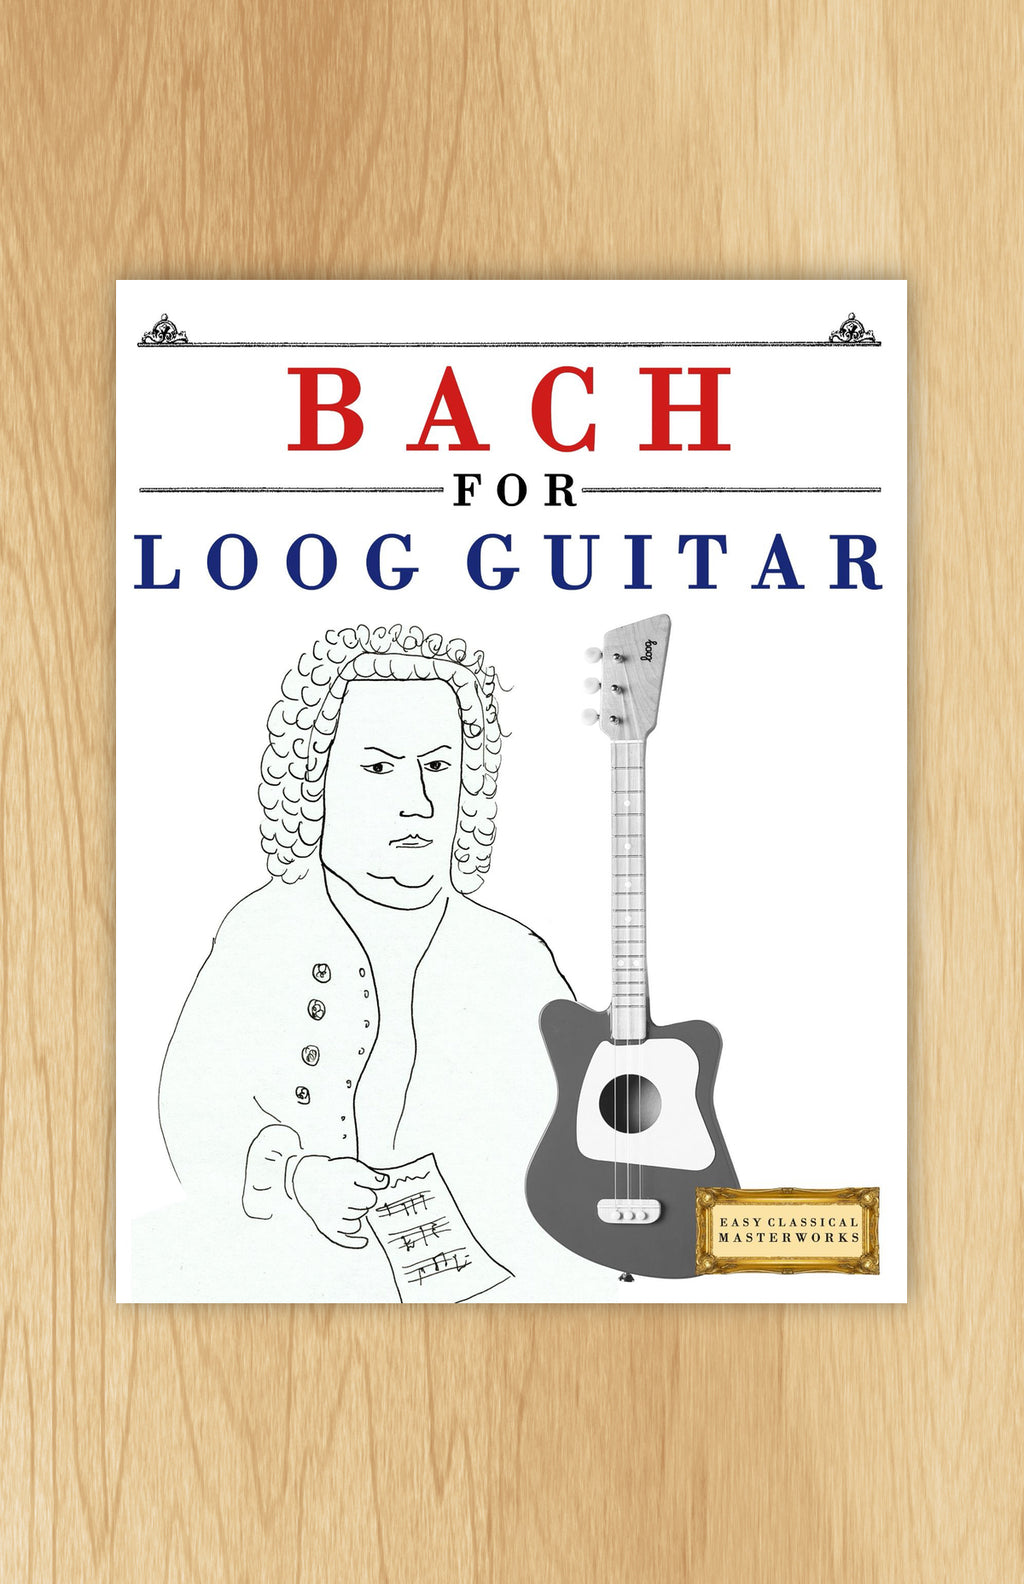 Bach for Loog Guitar